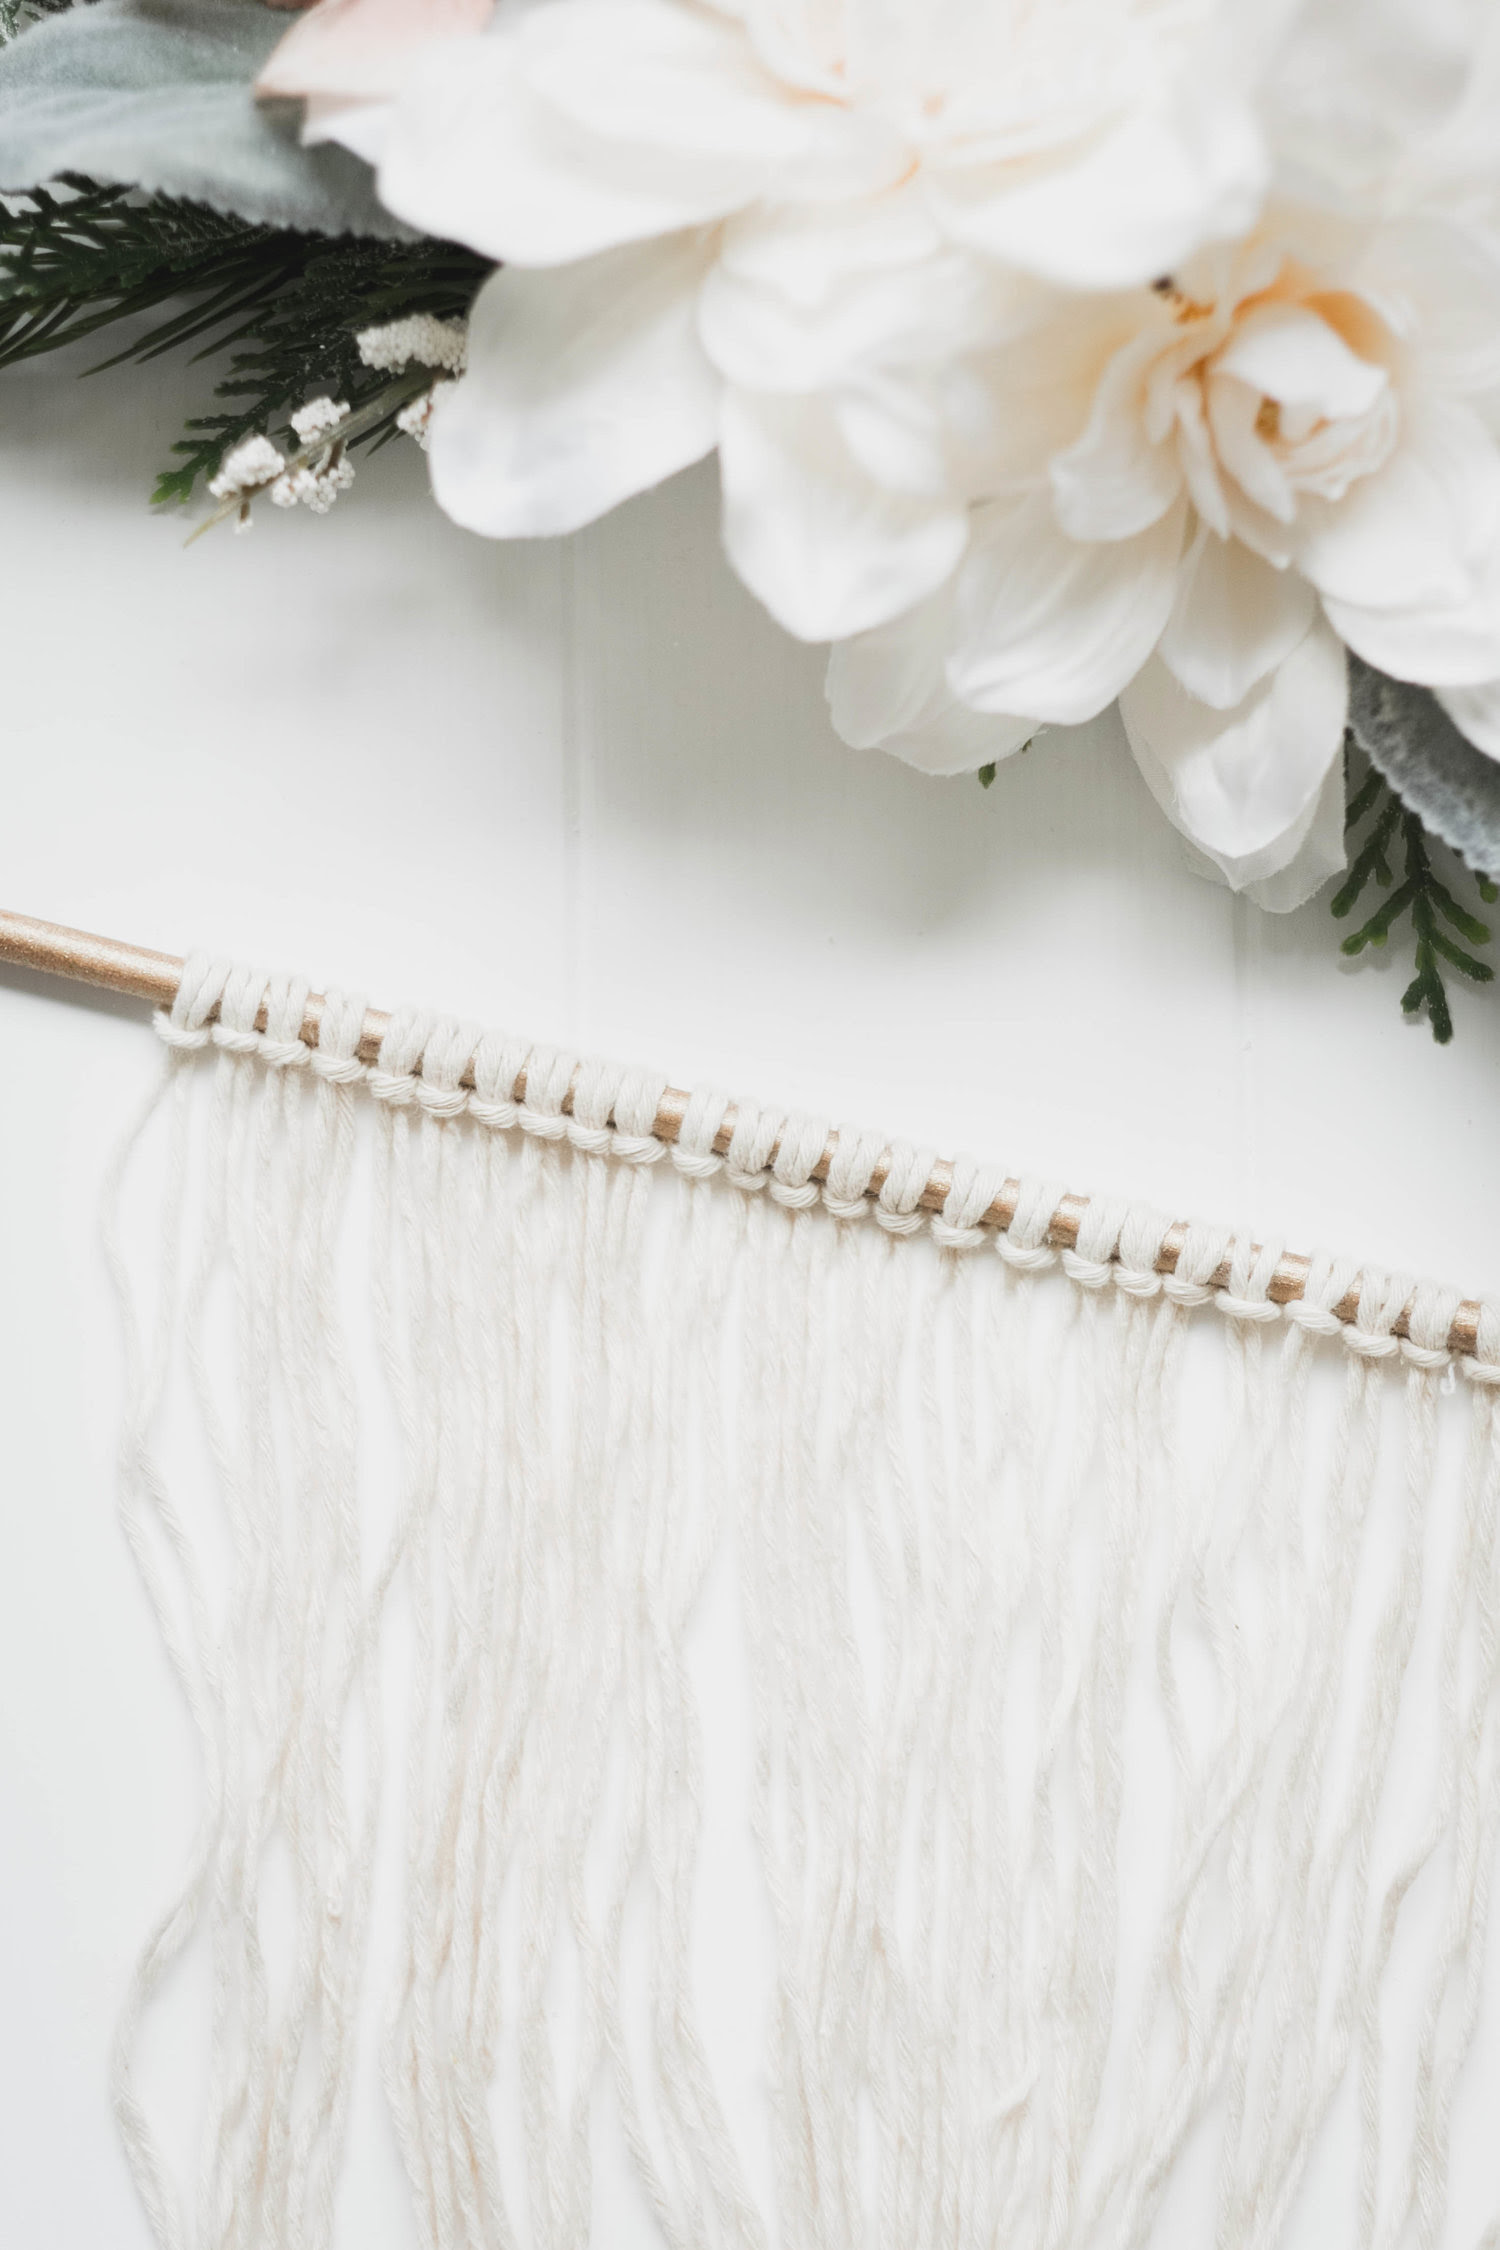 larks knot introduction to macrame